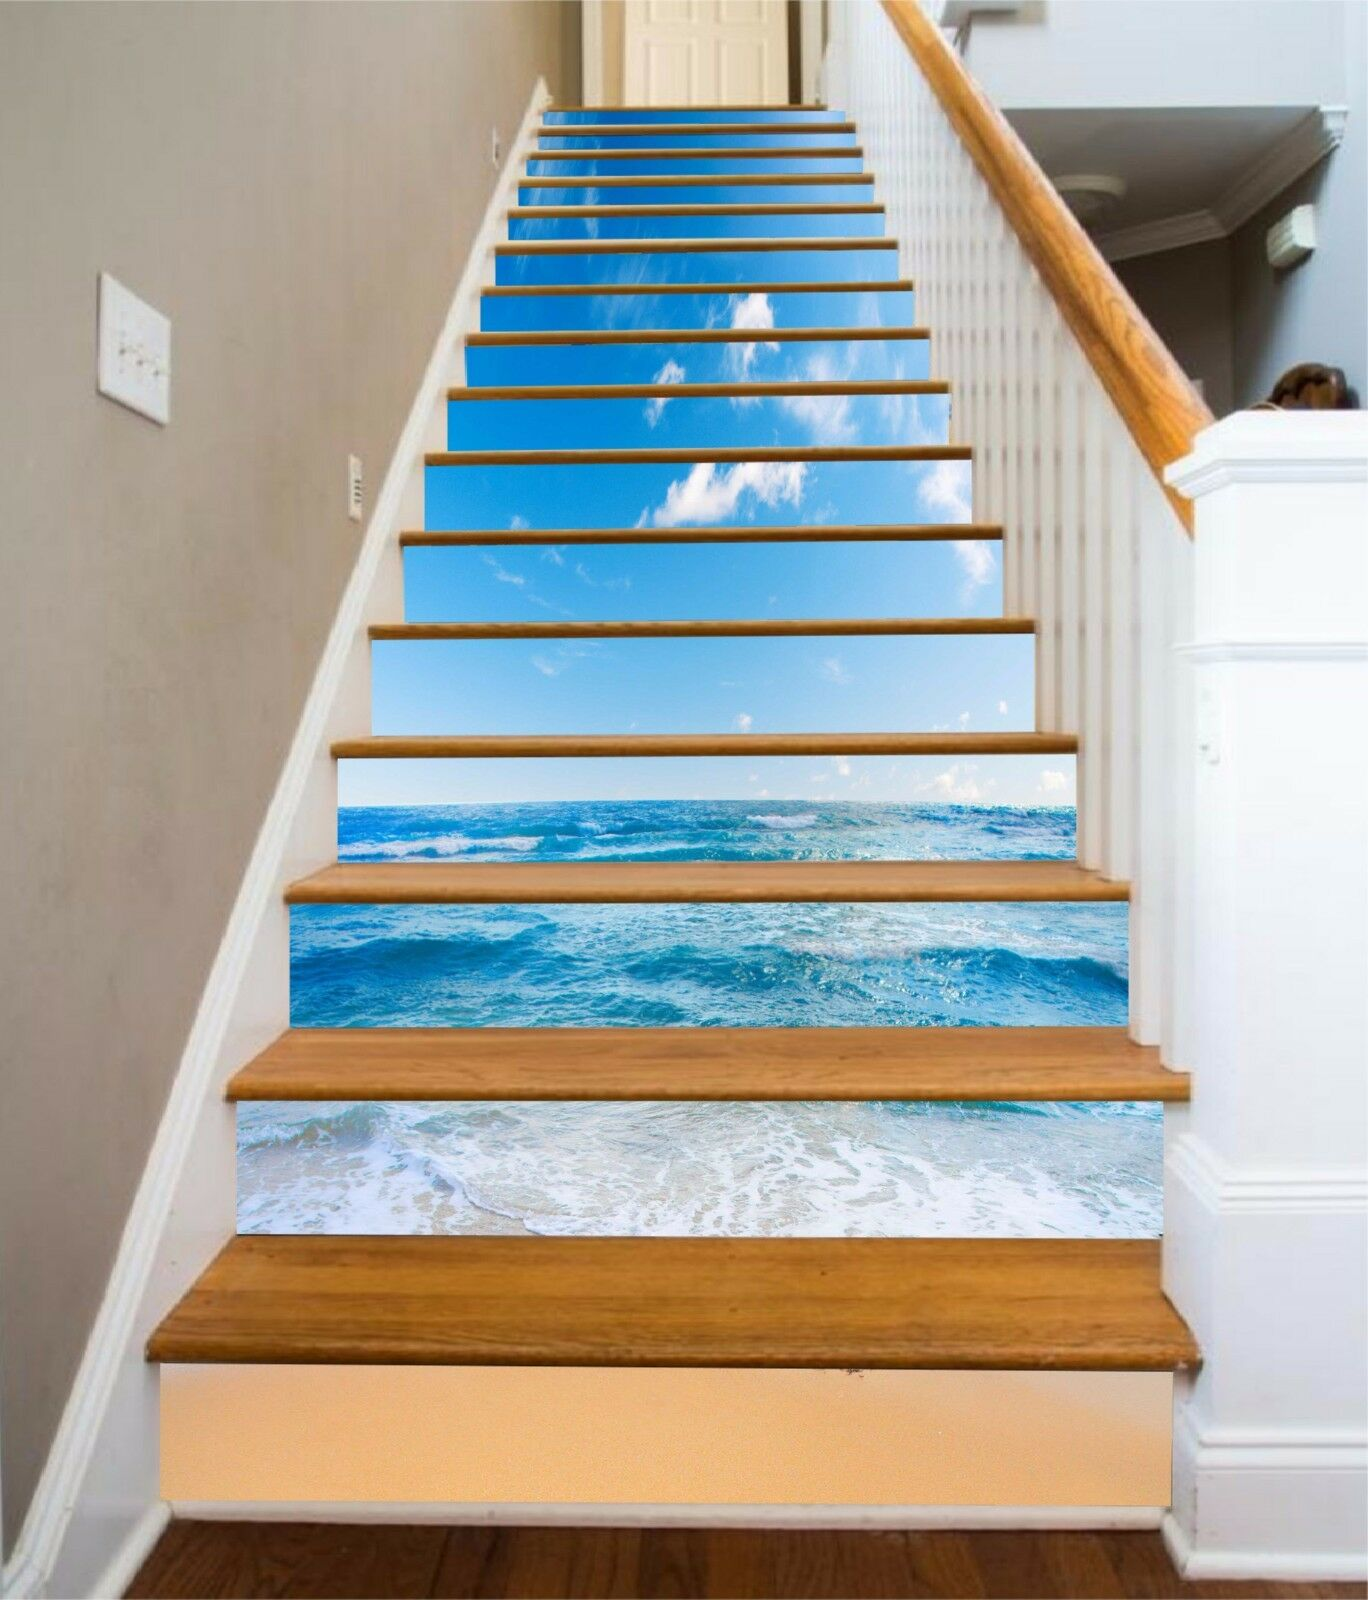 3D Wavy Sea 226 Stairs Risers Decoration Photo Mural Vinyl Decal Wallpaper US